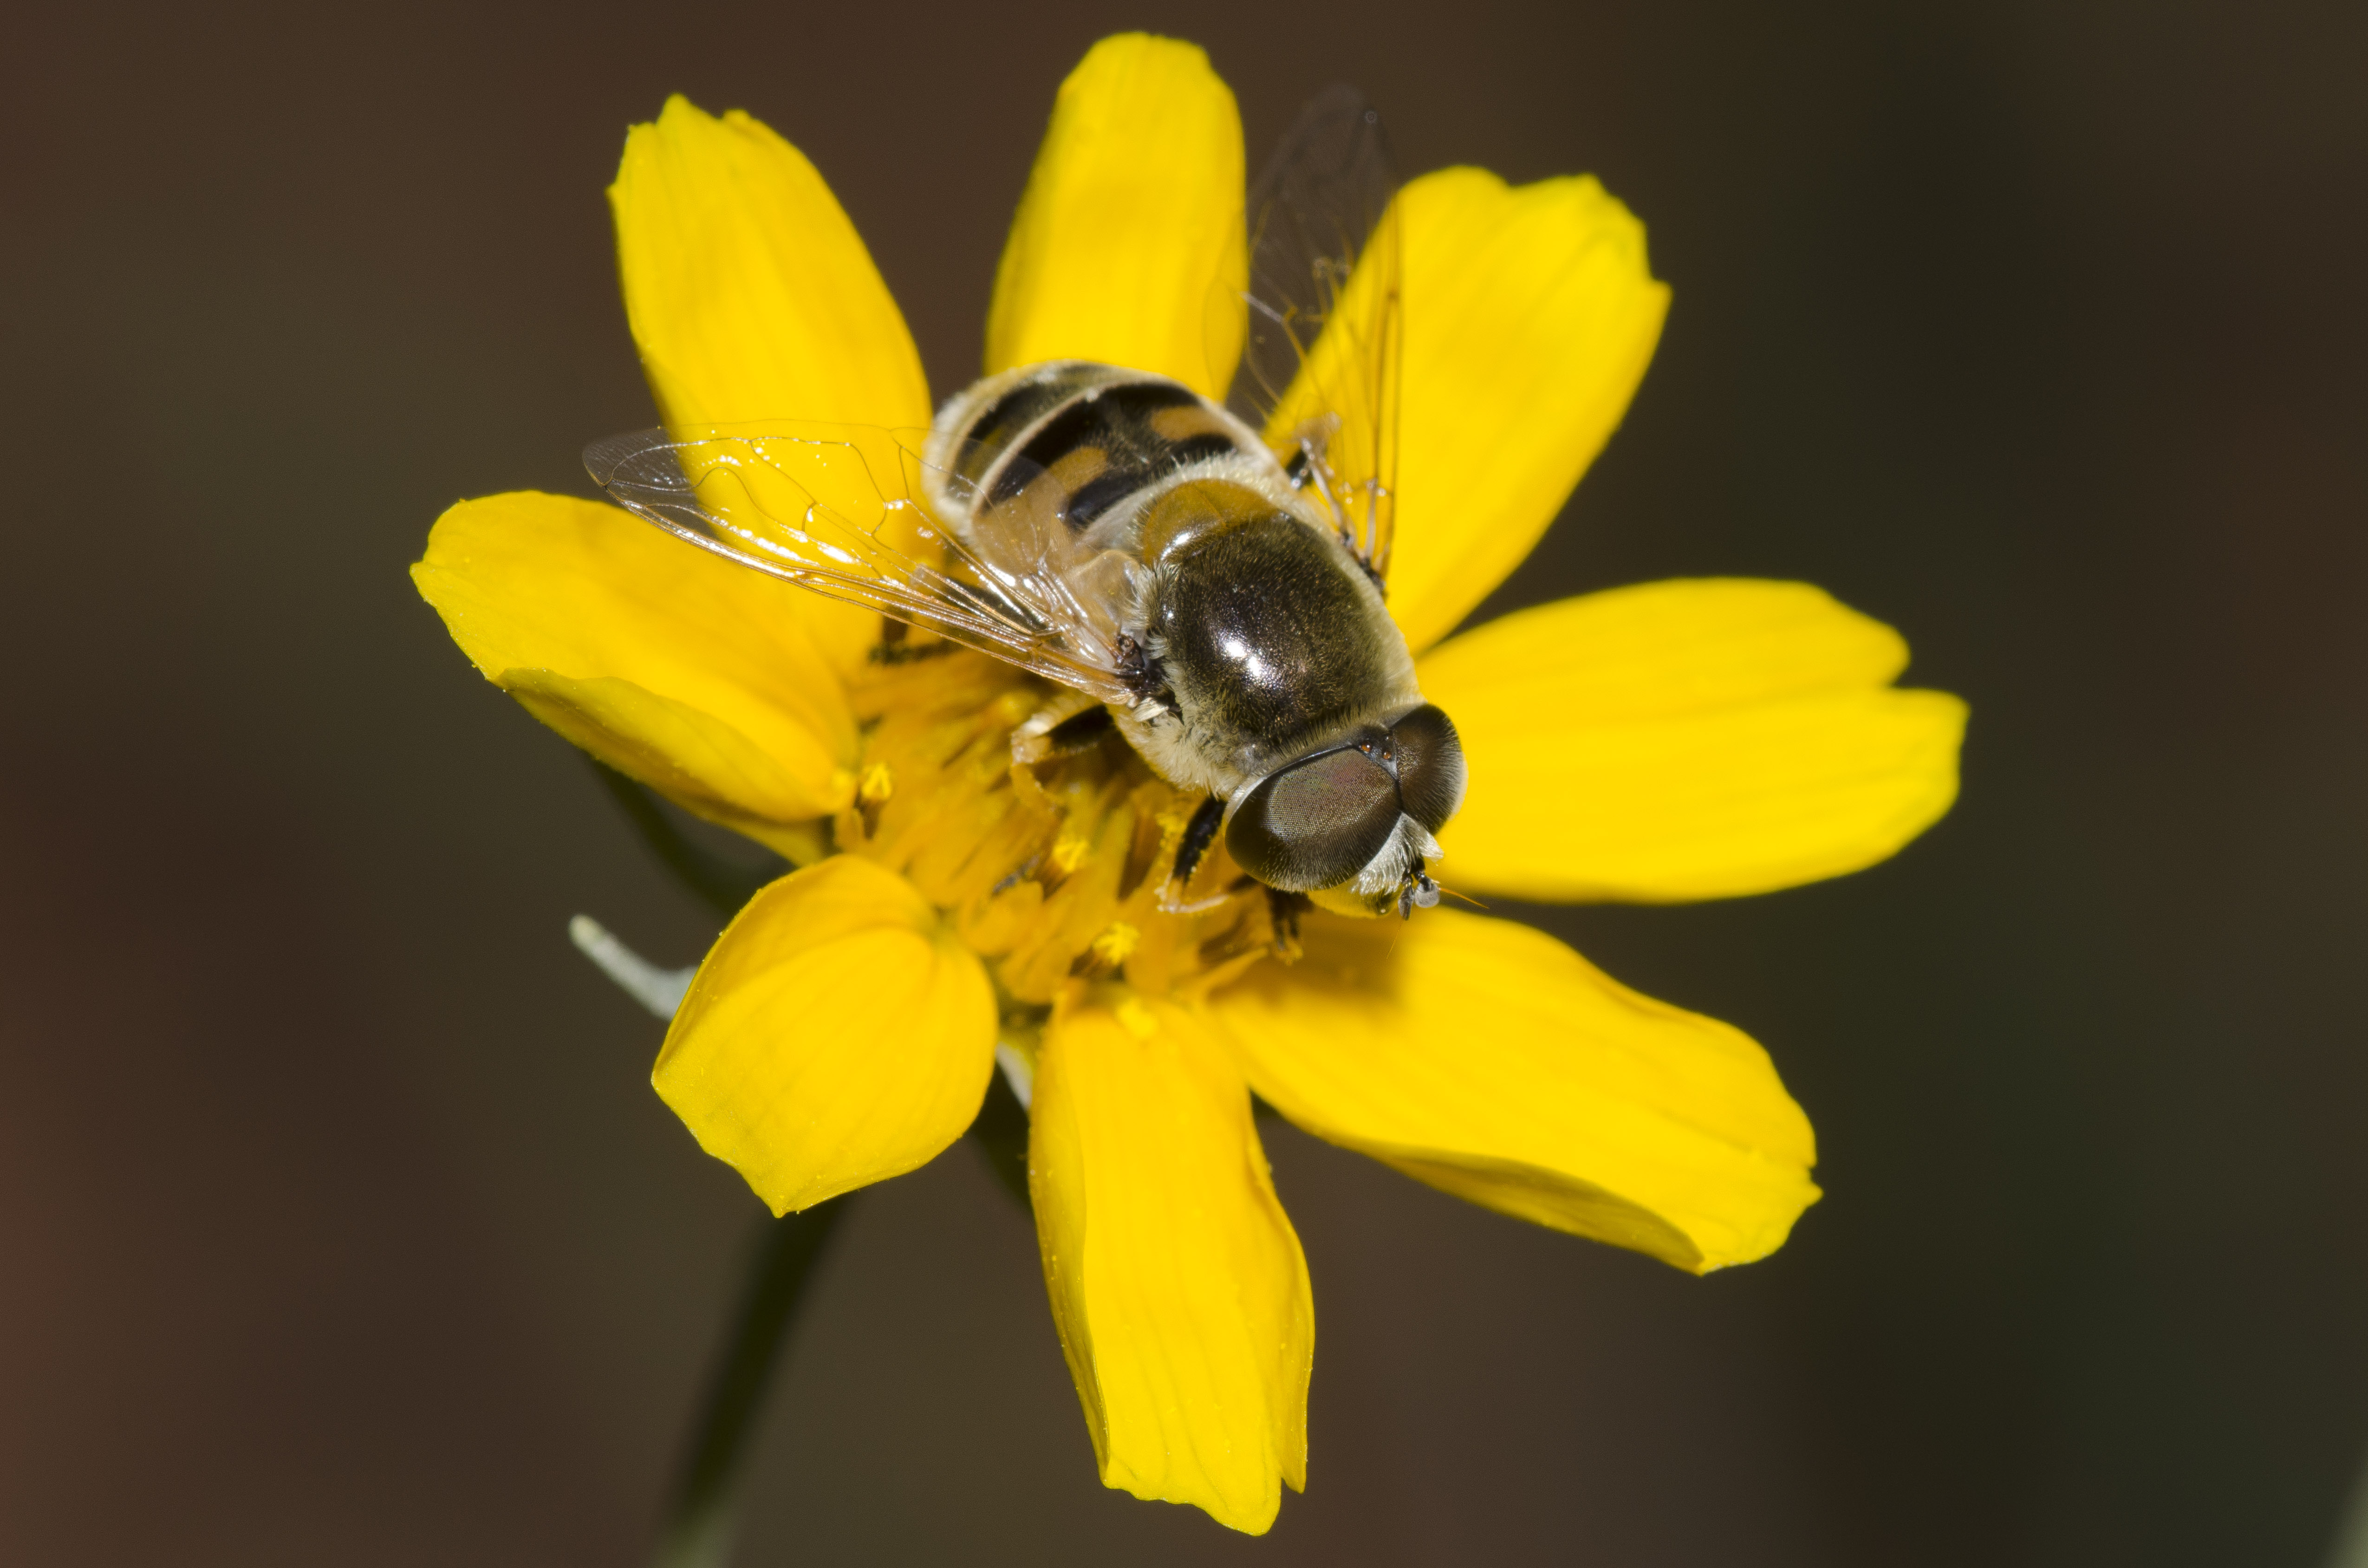 Syrphid Fly, Eristalis stipator, on stiff greenthread, Thelesper